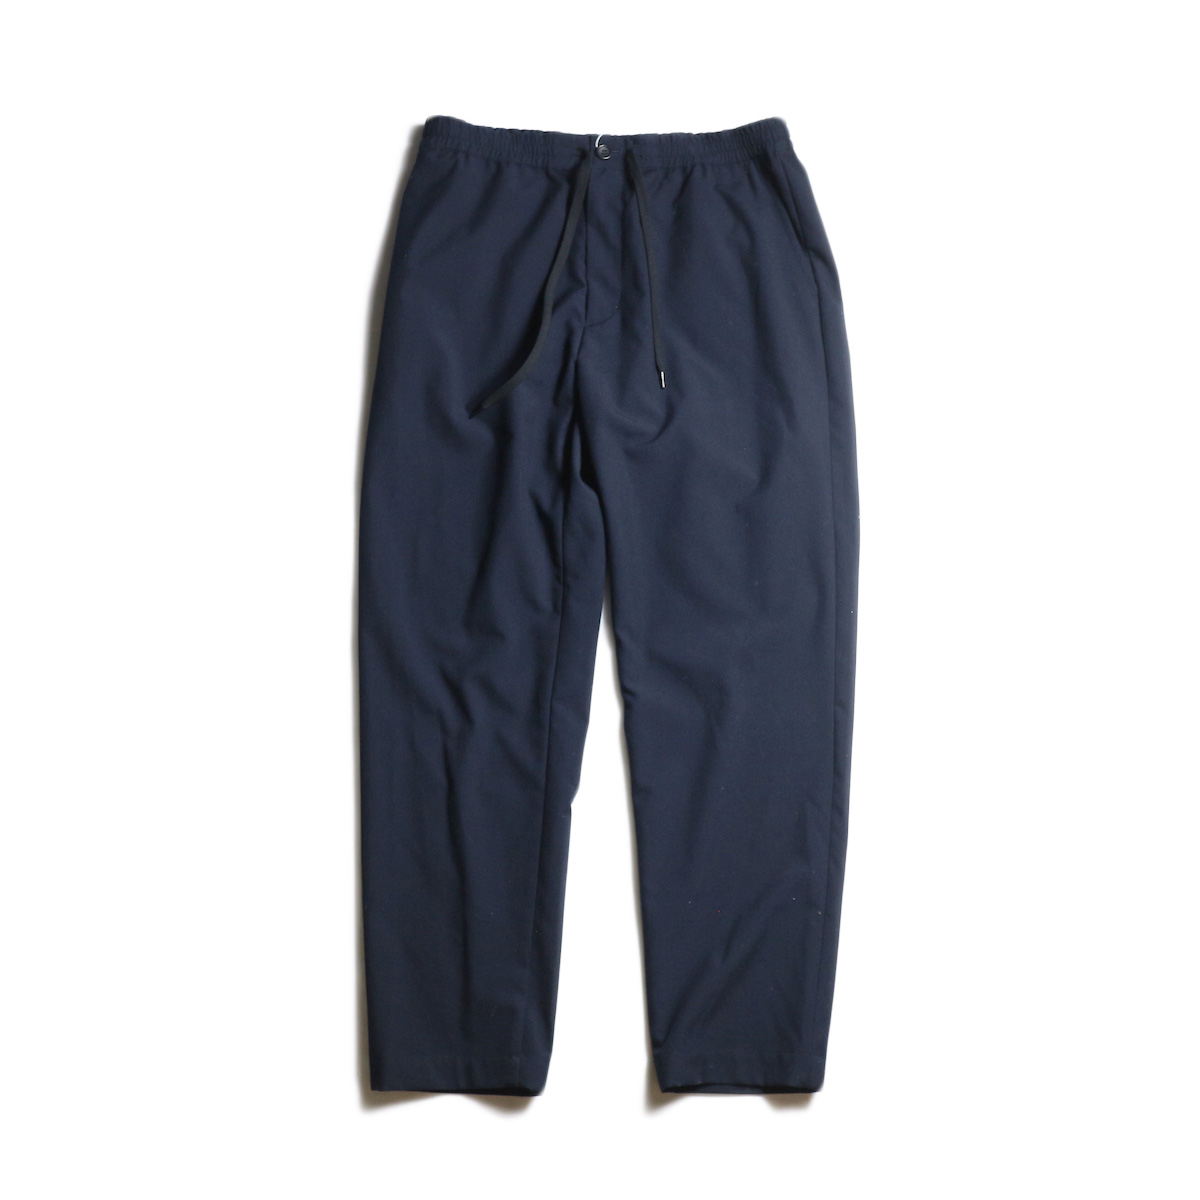 EVCON / EASY SLACKS (Navy)